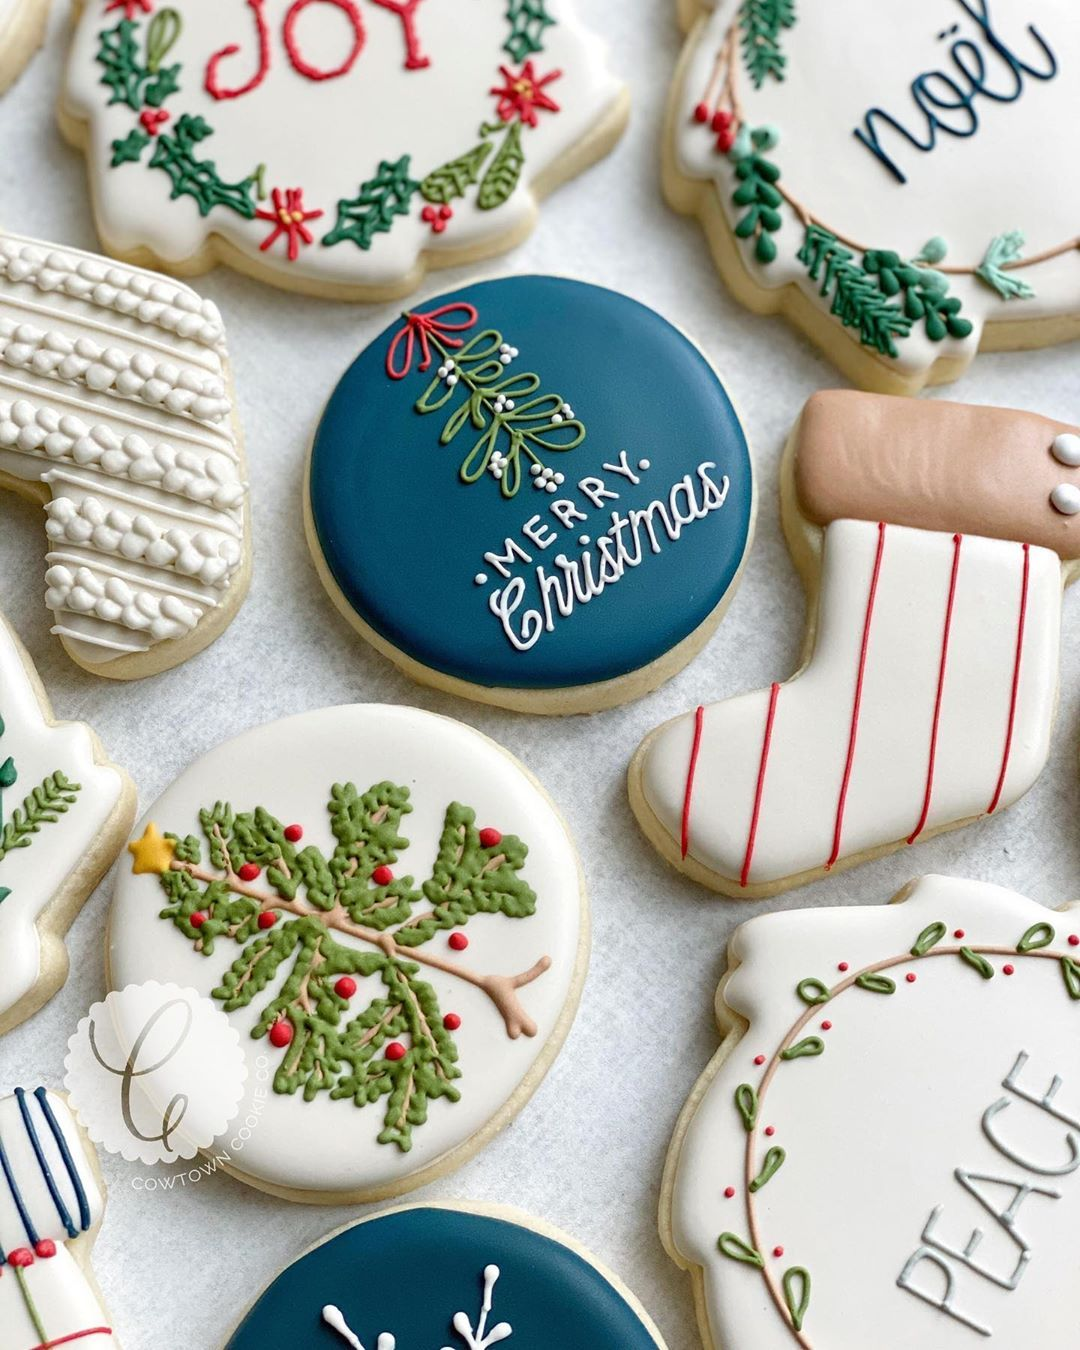 "Cowtown Christmas 2020 Cowtown Cookie Co. on Instagram: ""Merry Christmas in July"